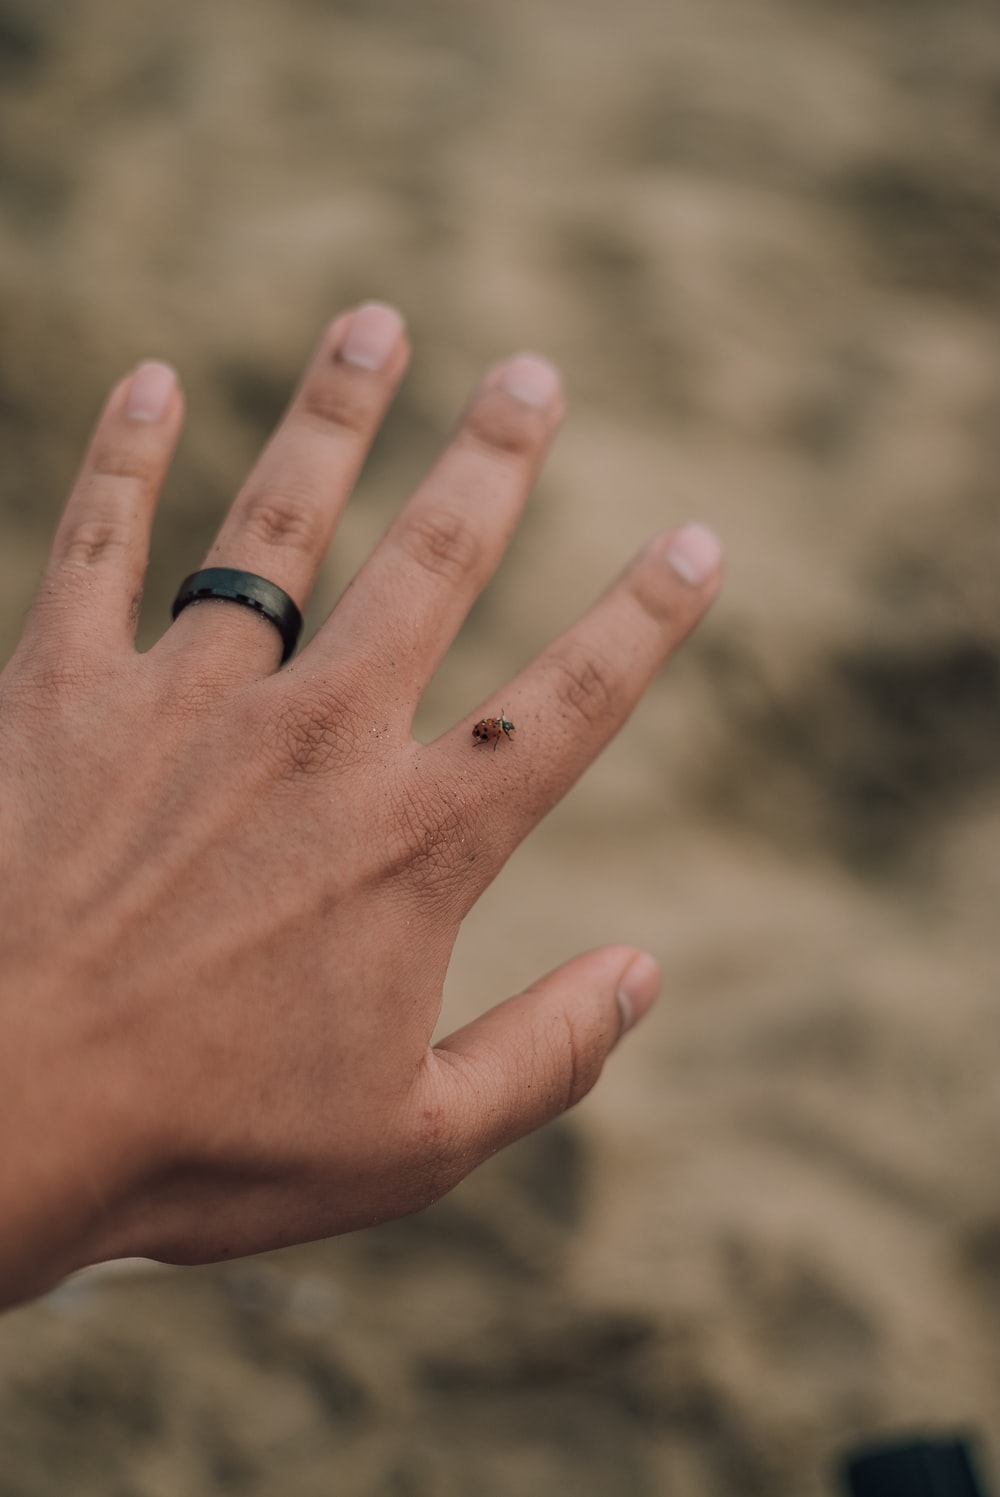 person wearing black ring on left hand